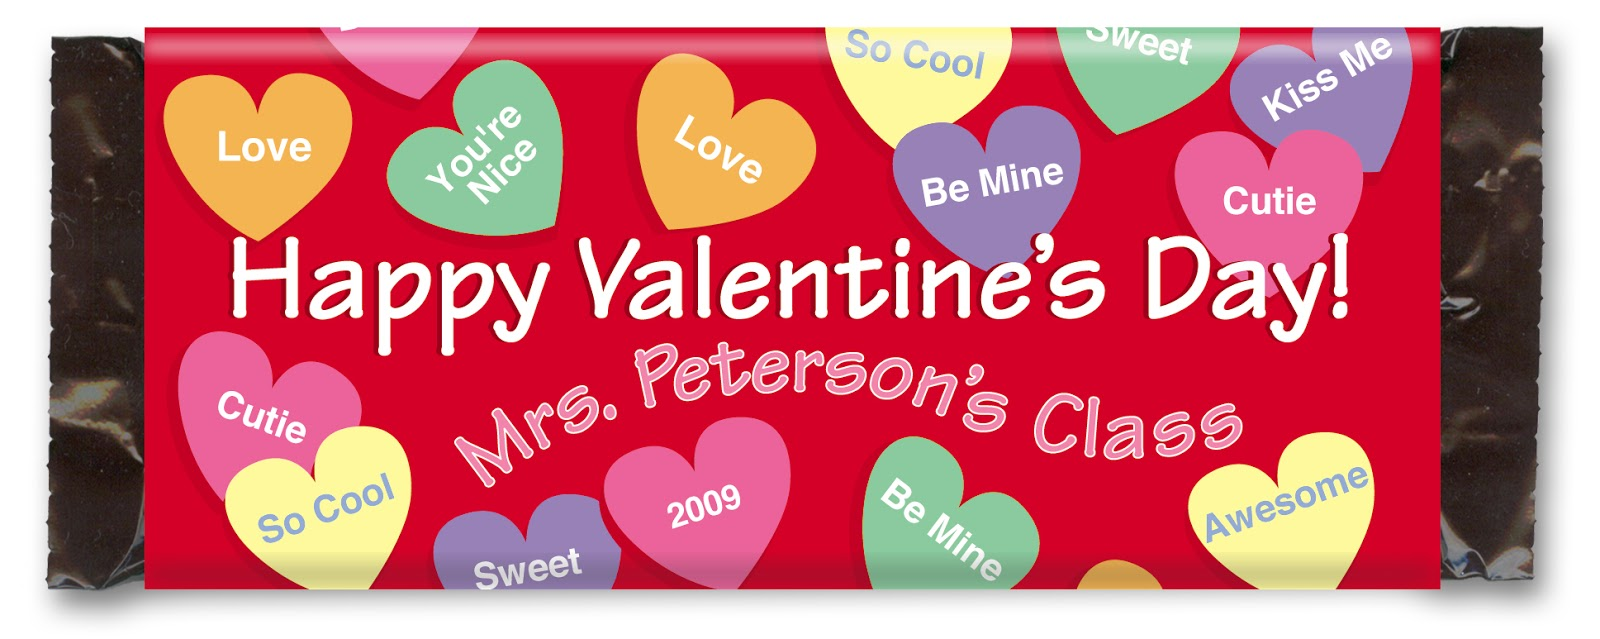 personalized chocolate bar wrapper for valentines day - Personalized Valentine Candy